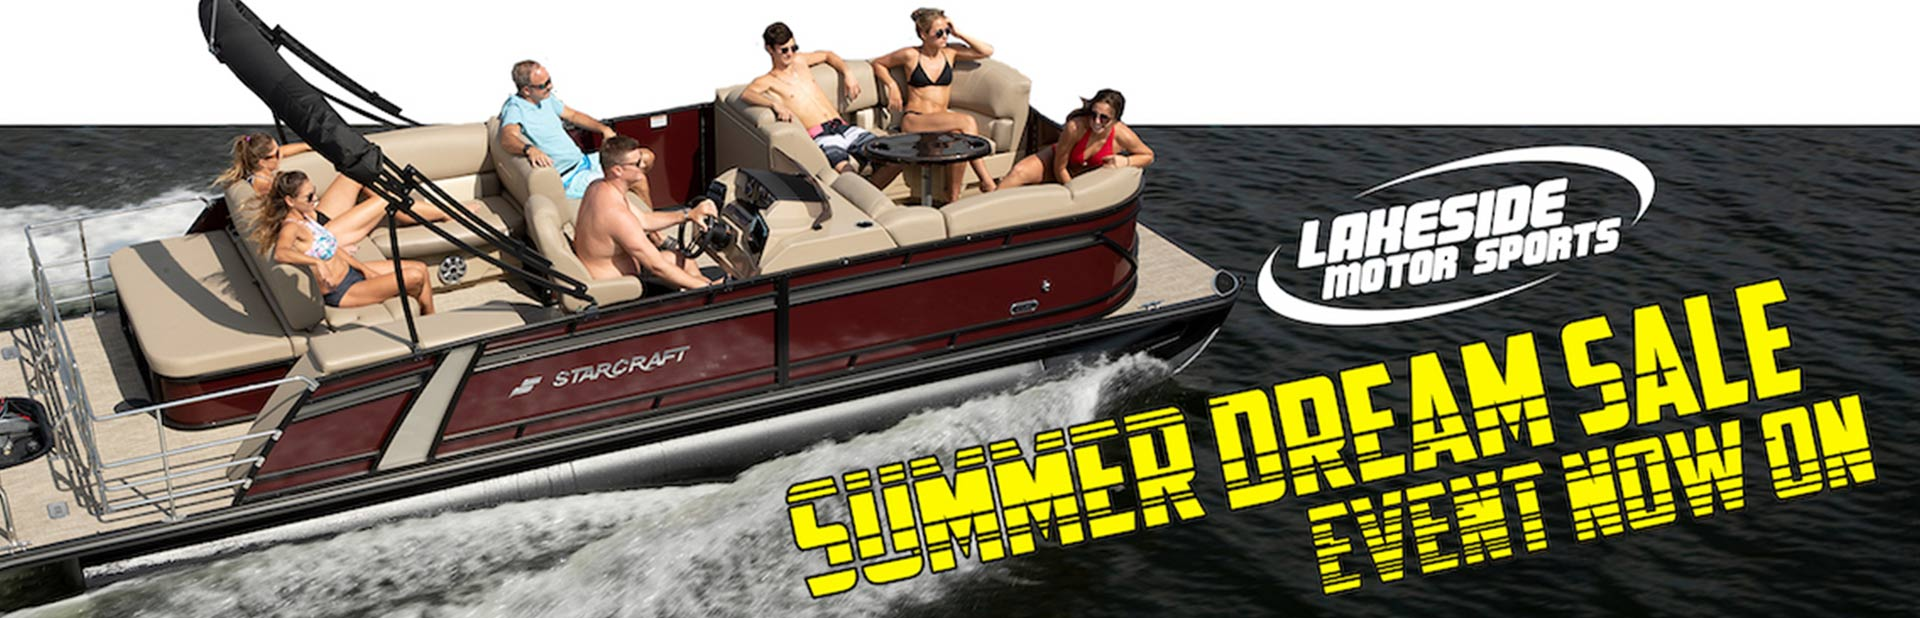 New Used Boats For Sale In Michigan Lakeside Motor